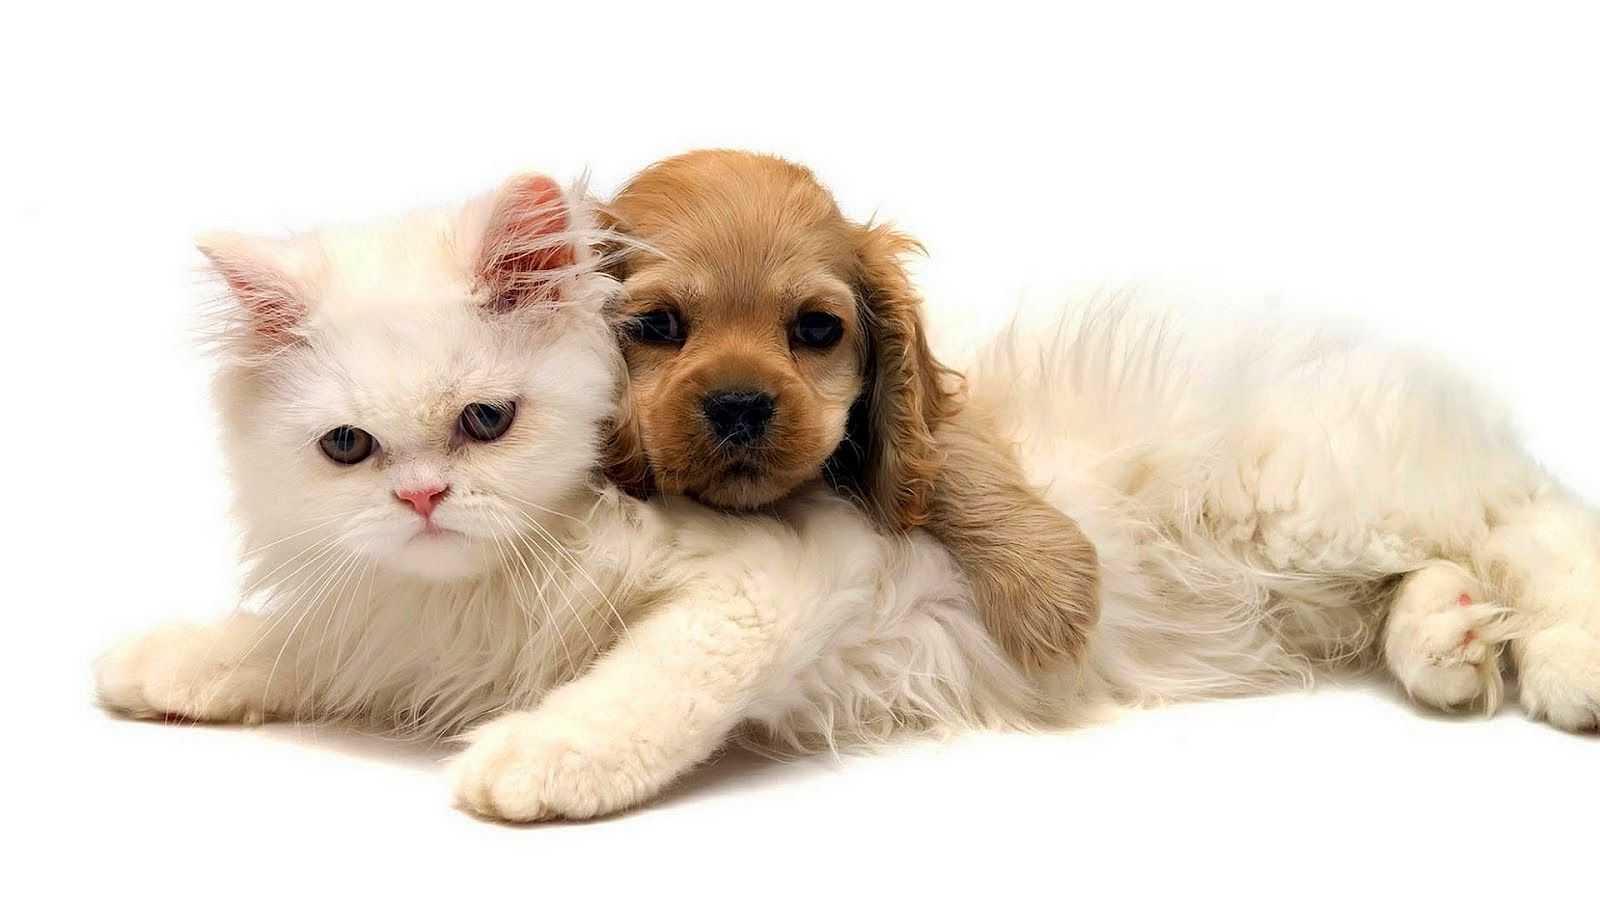 Dogs And Cats Images Hd Animal Wallpaper Of A Cat And Dog Cuddling